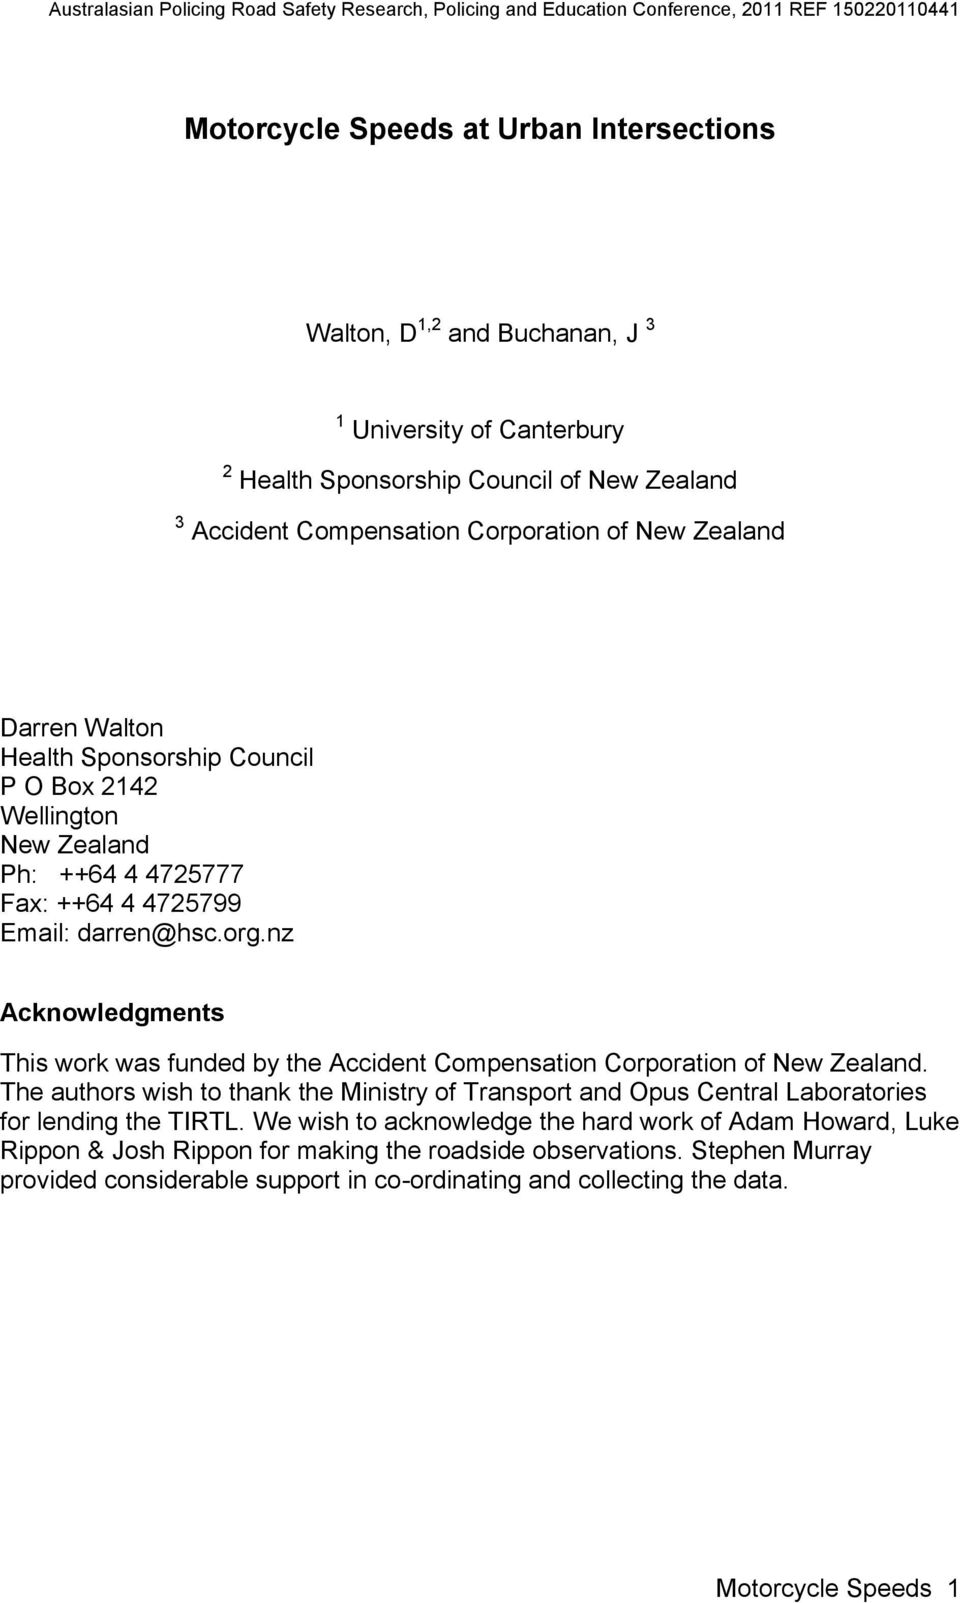 nz Acknowledgments This work was funded by the Accident Compensation Corporation of New Zealand.